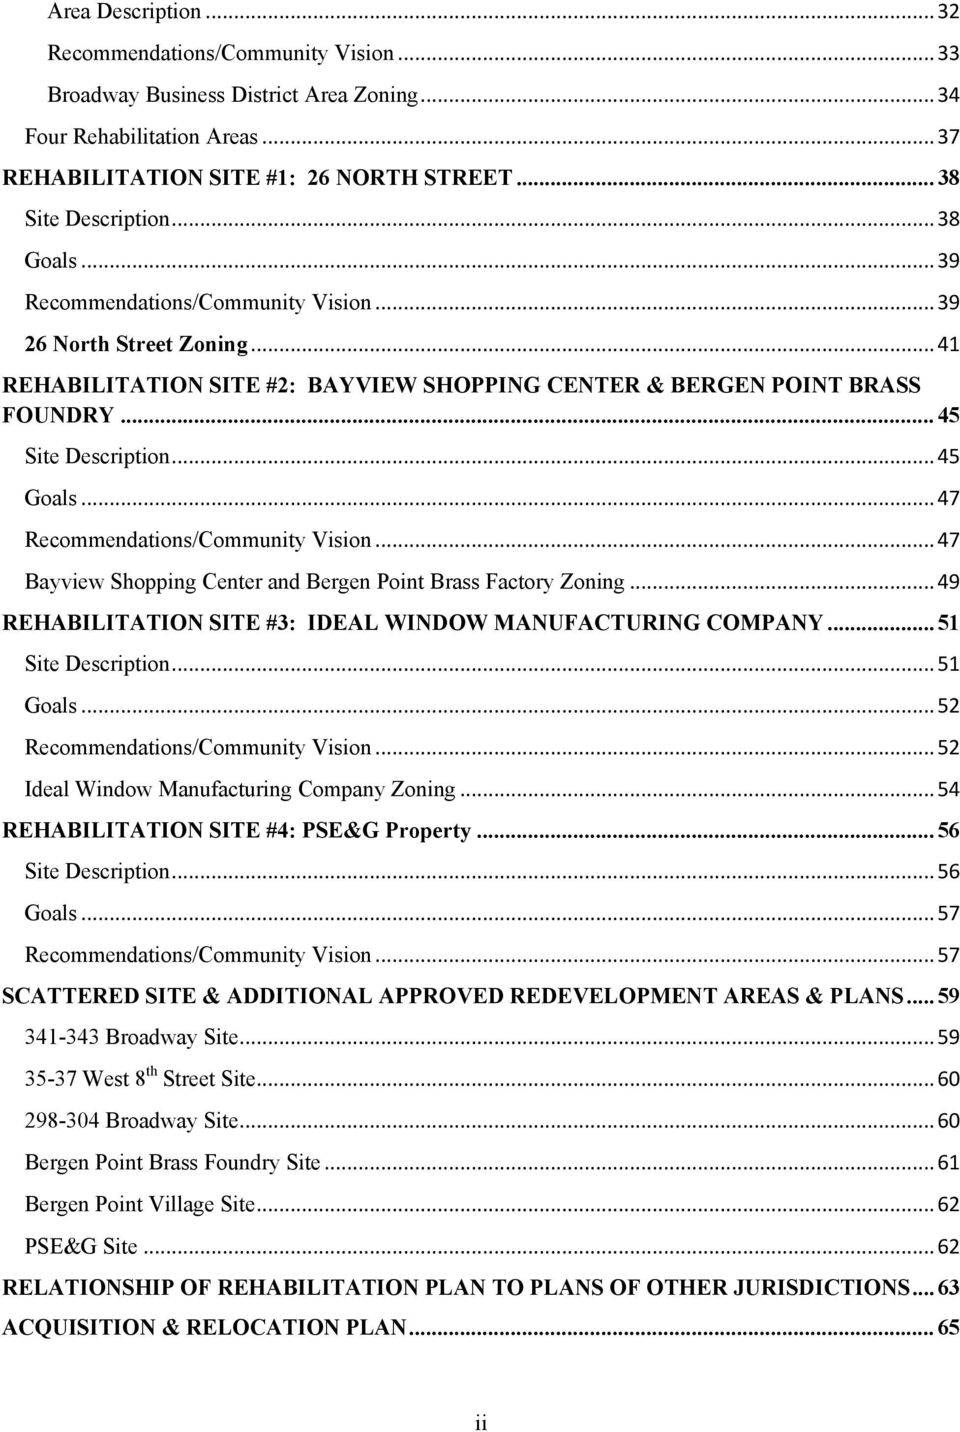 .. 47 Recommendations/Community Vision... 47 Bayview Shopping Center and Bergen Point Brass Factory Zoning... 49 REHABILITATION SITE #3: IDEAL WINDOW MANUFACTURING COMPANY... 51 Site Description.